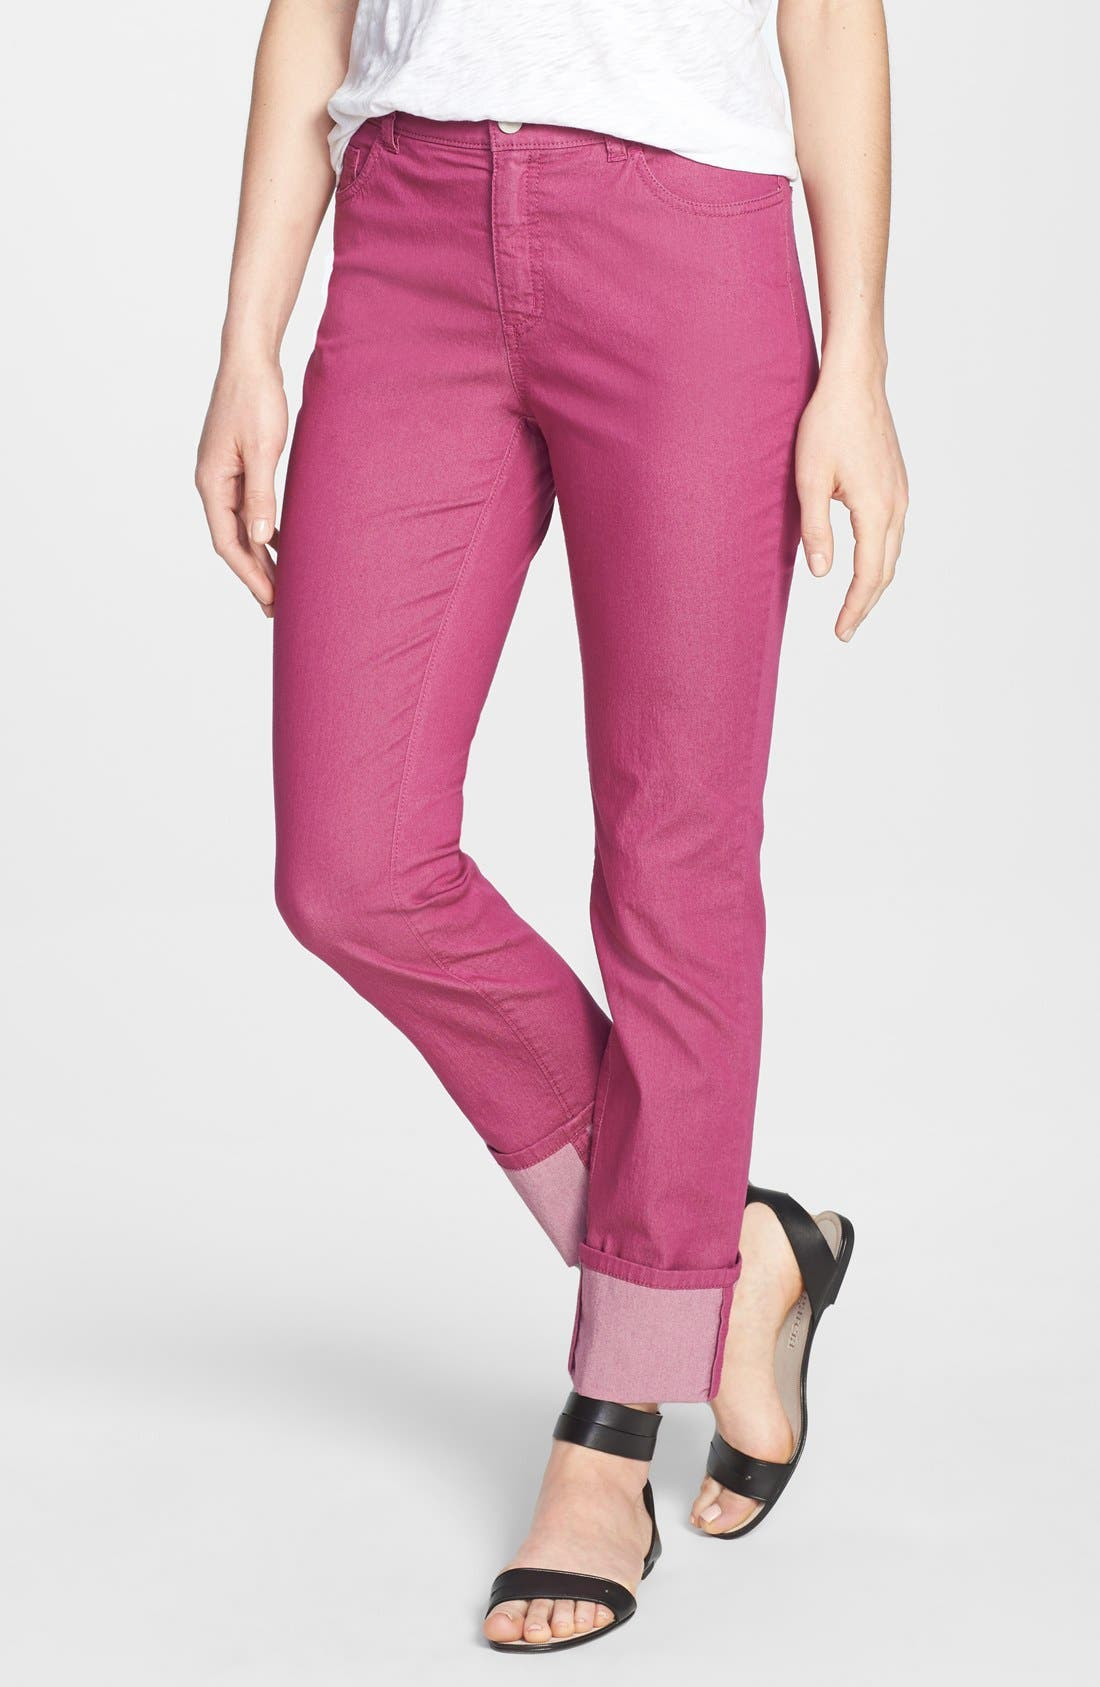 Alternate Image 1 Selected - Lafayette 148 New York Cuffed Colored Stretch Denim Crop Jeans